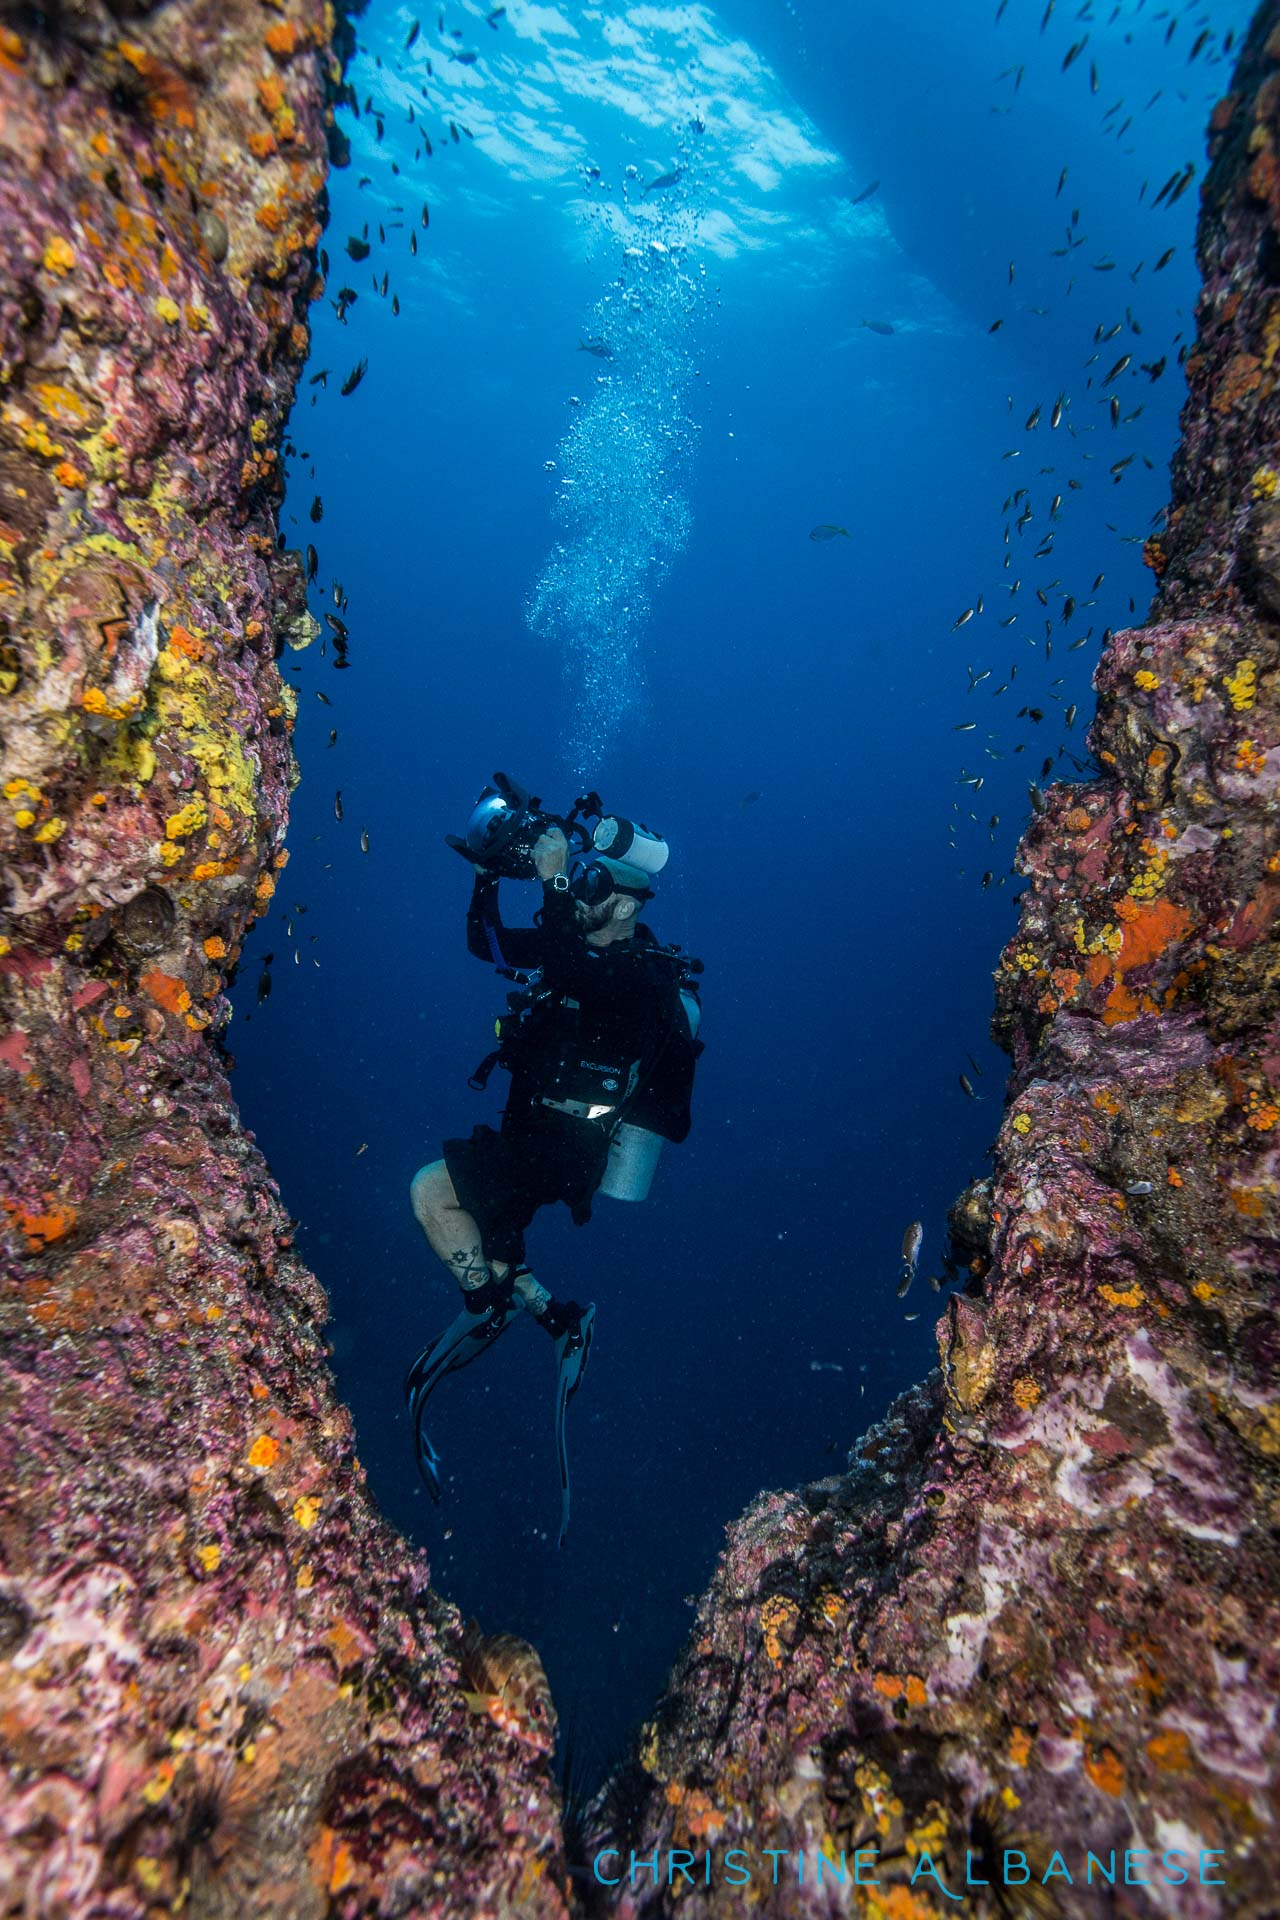 I had loads of fun teaching Jess and John what I know about underwater photography! Here's a photo I took of John while I was inside the chimney at Sailrock. Great students, miss you guys! 😊 @jesathey   #creativeframing #naturalframe #underwater #underwaterdiving #underwaterphotography #uwphotography #photocourse #ocean #sailrock #thailand #kohtao #adventure #ikelite #ds160 #canonshooters #canon6d #canon1740 #wideangle #scuba #scubadiving #divinglife #padi